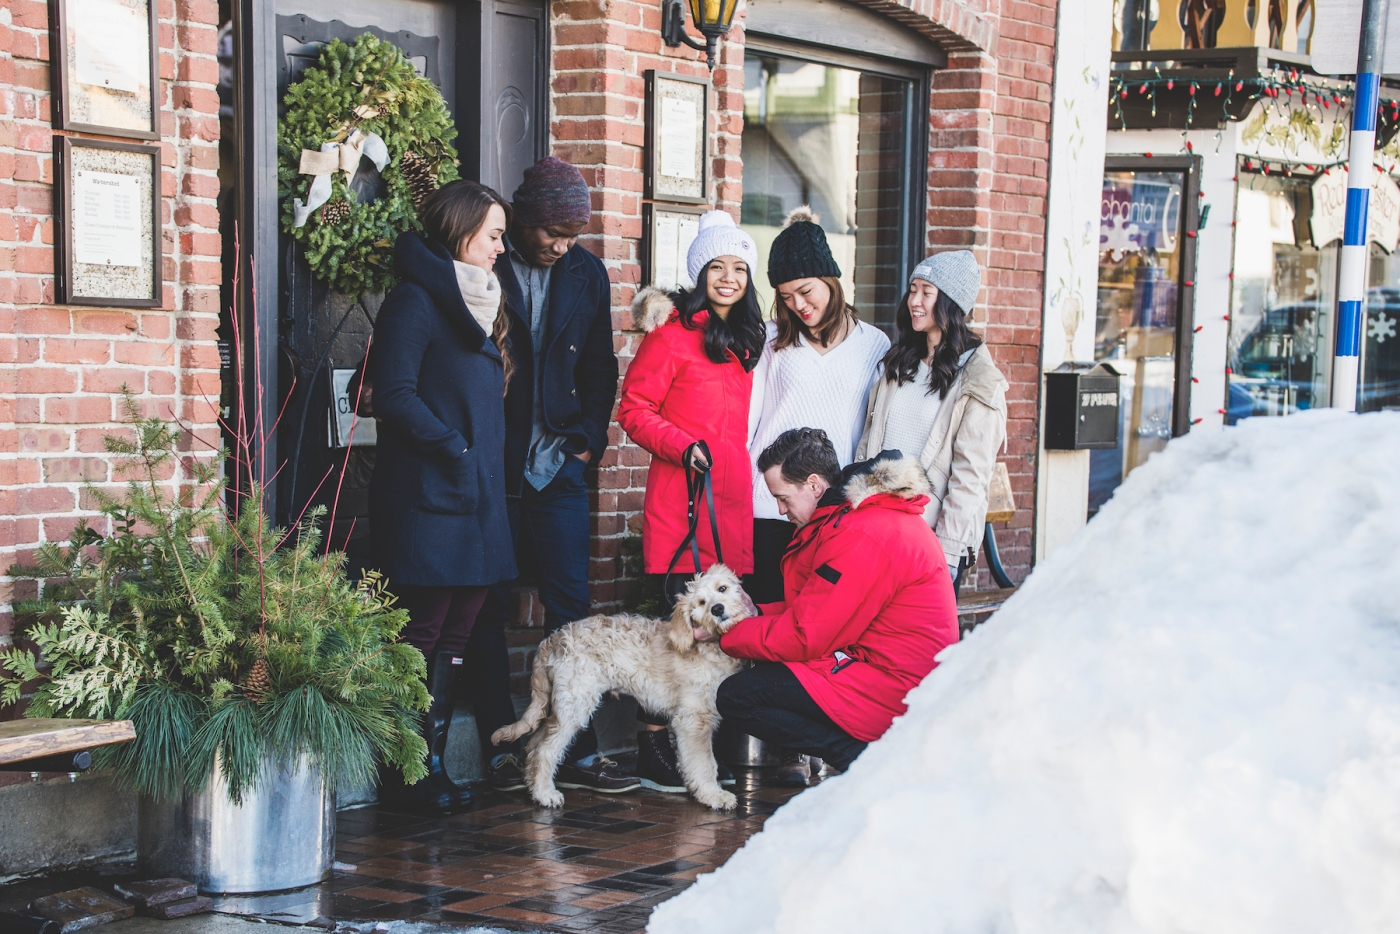 leavenworth_elopement_by_jane_speleers_photography_seattle_photographer_2017_winter_snow_joy_and_jason_rendezvous_ranch_cashmere_leavenworth_nahahum_canyon_all_rights_reserveddsc_9509